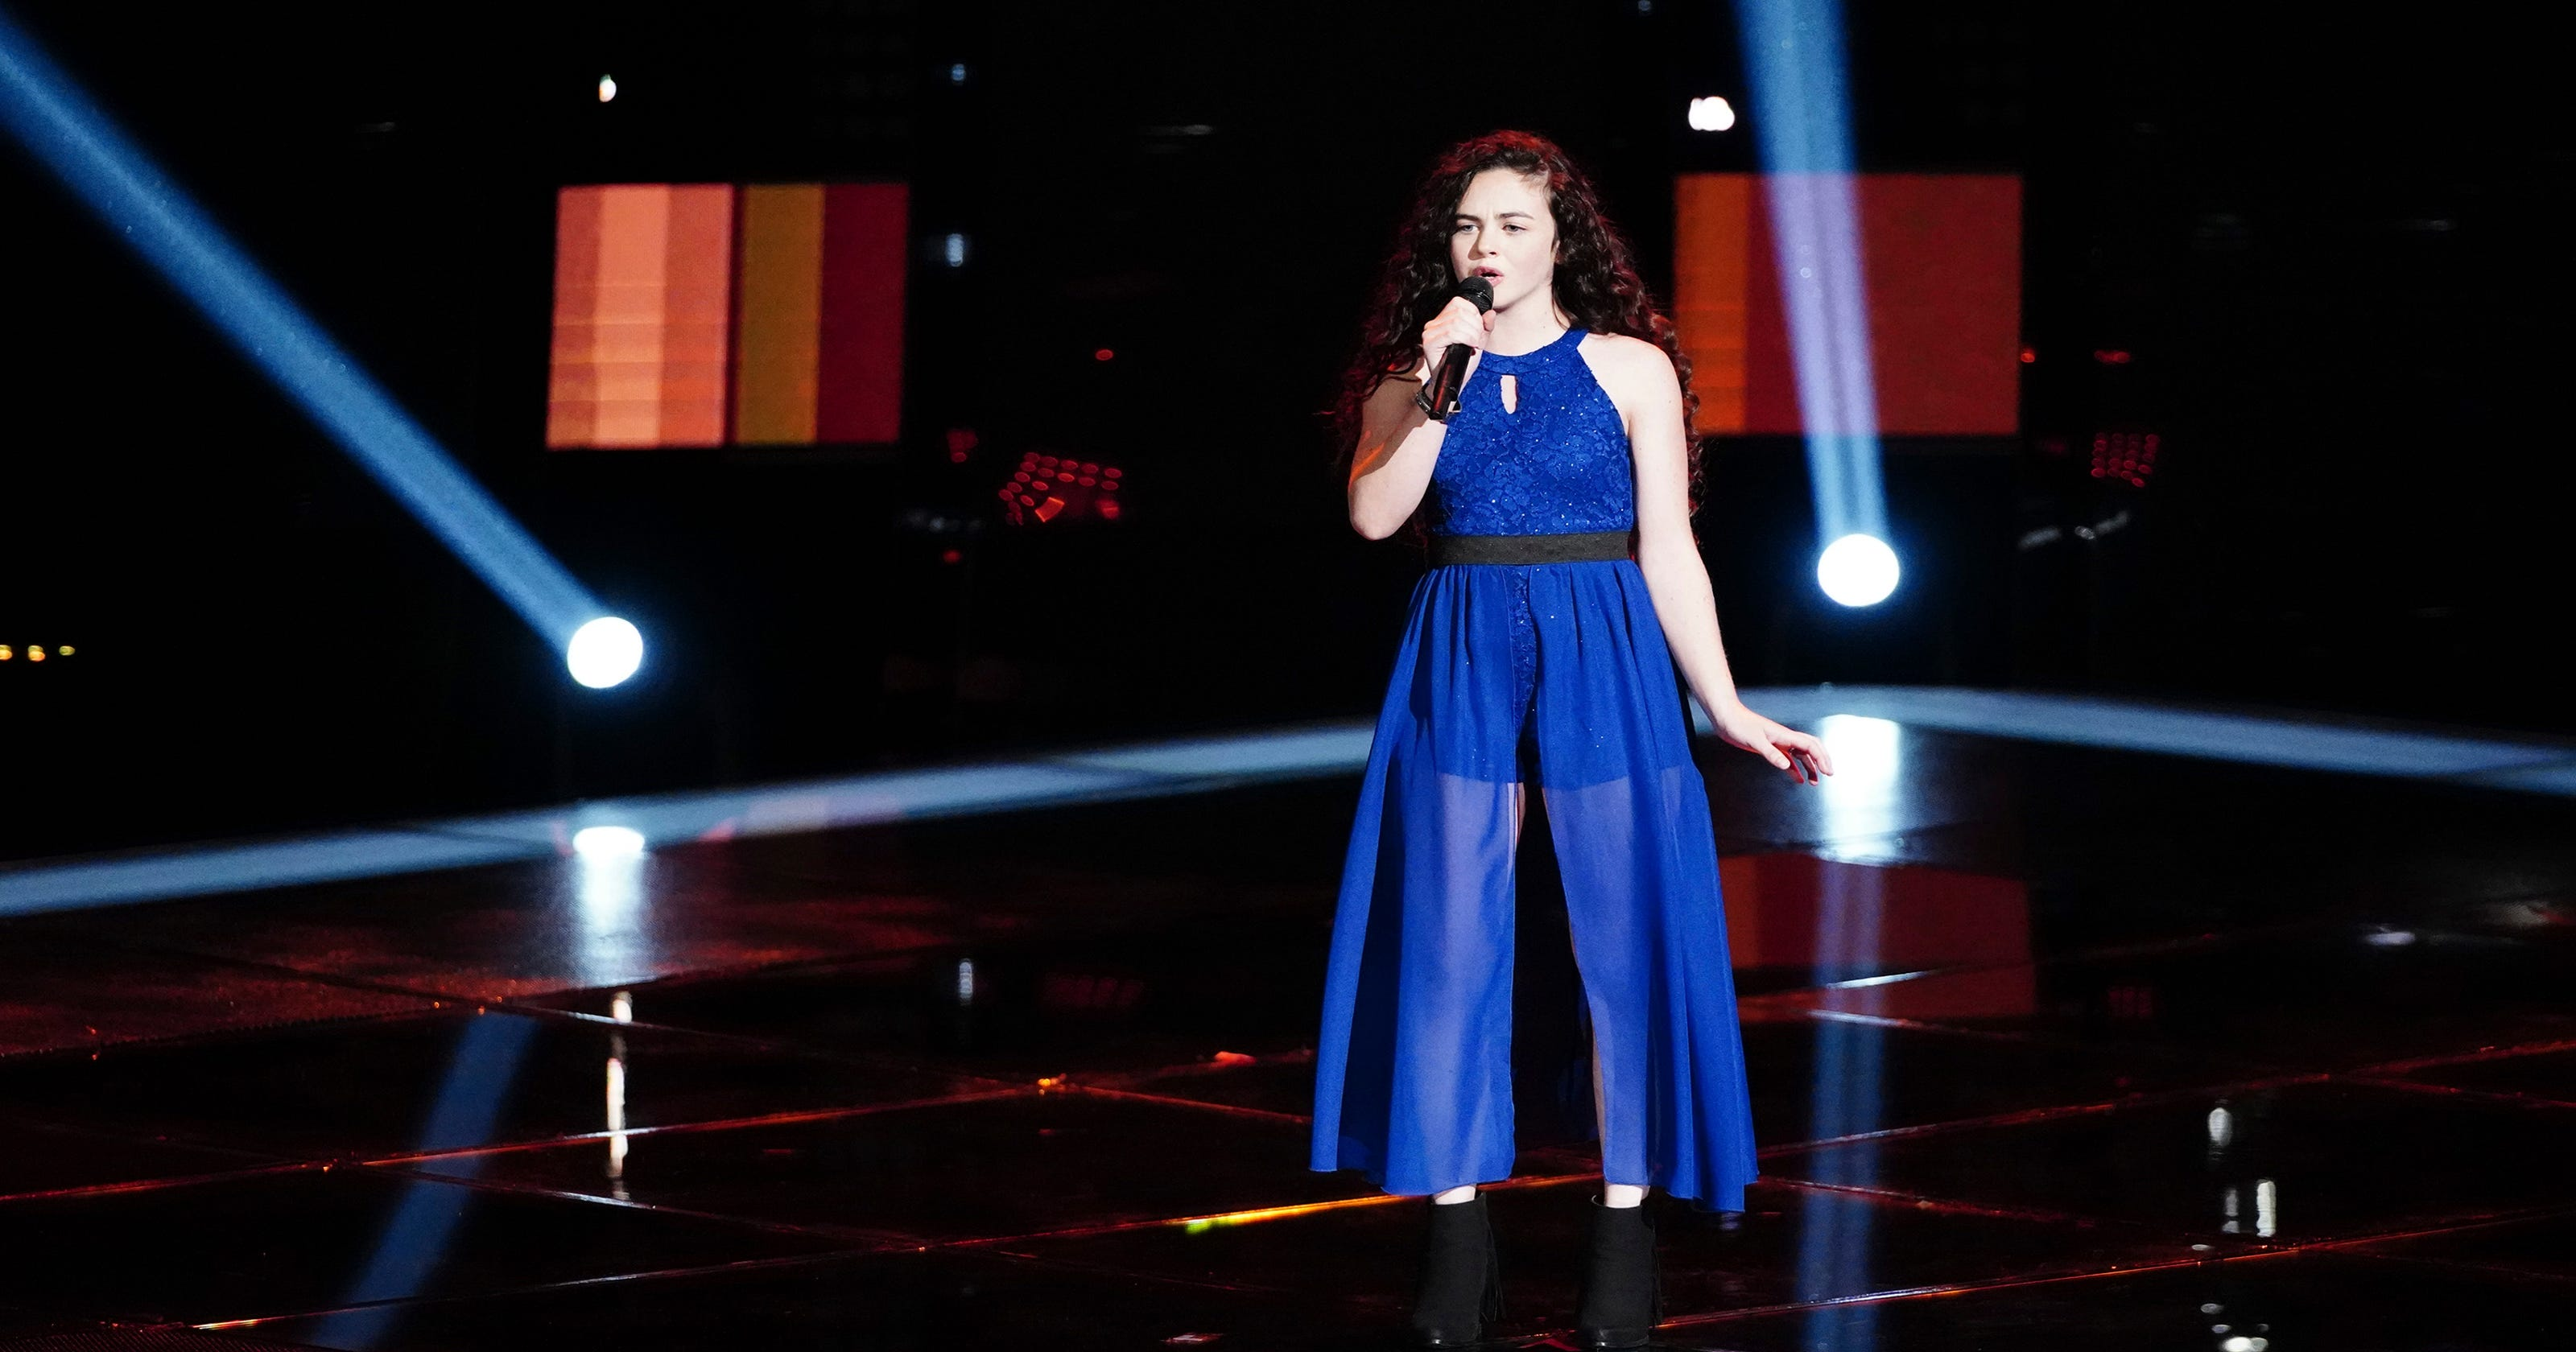 Chevel Shepherd wows The Voice crowd singing Judds hit